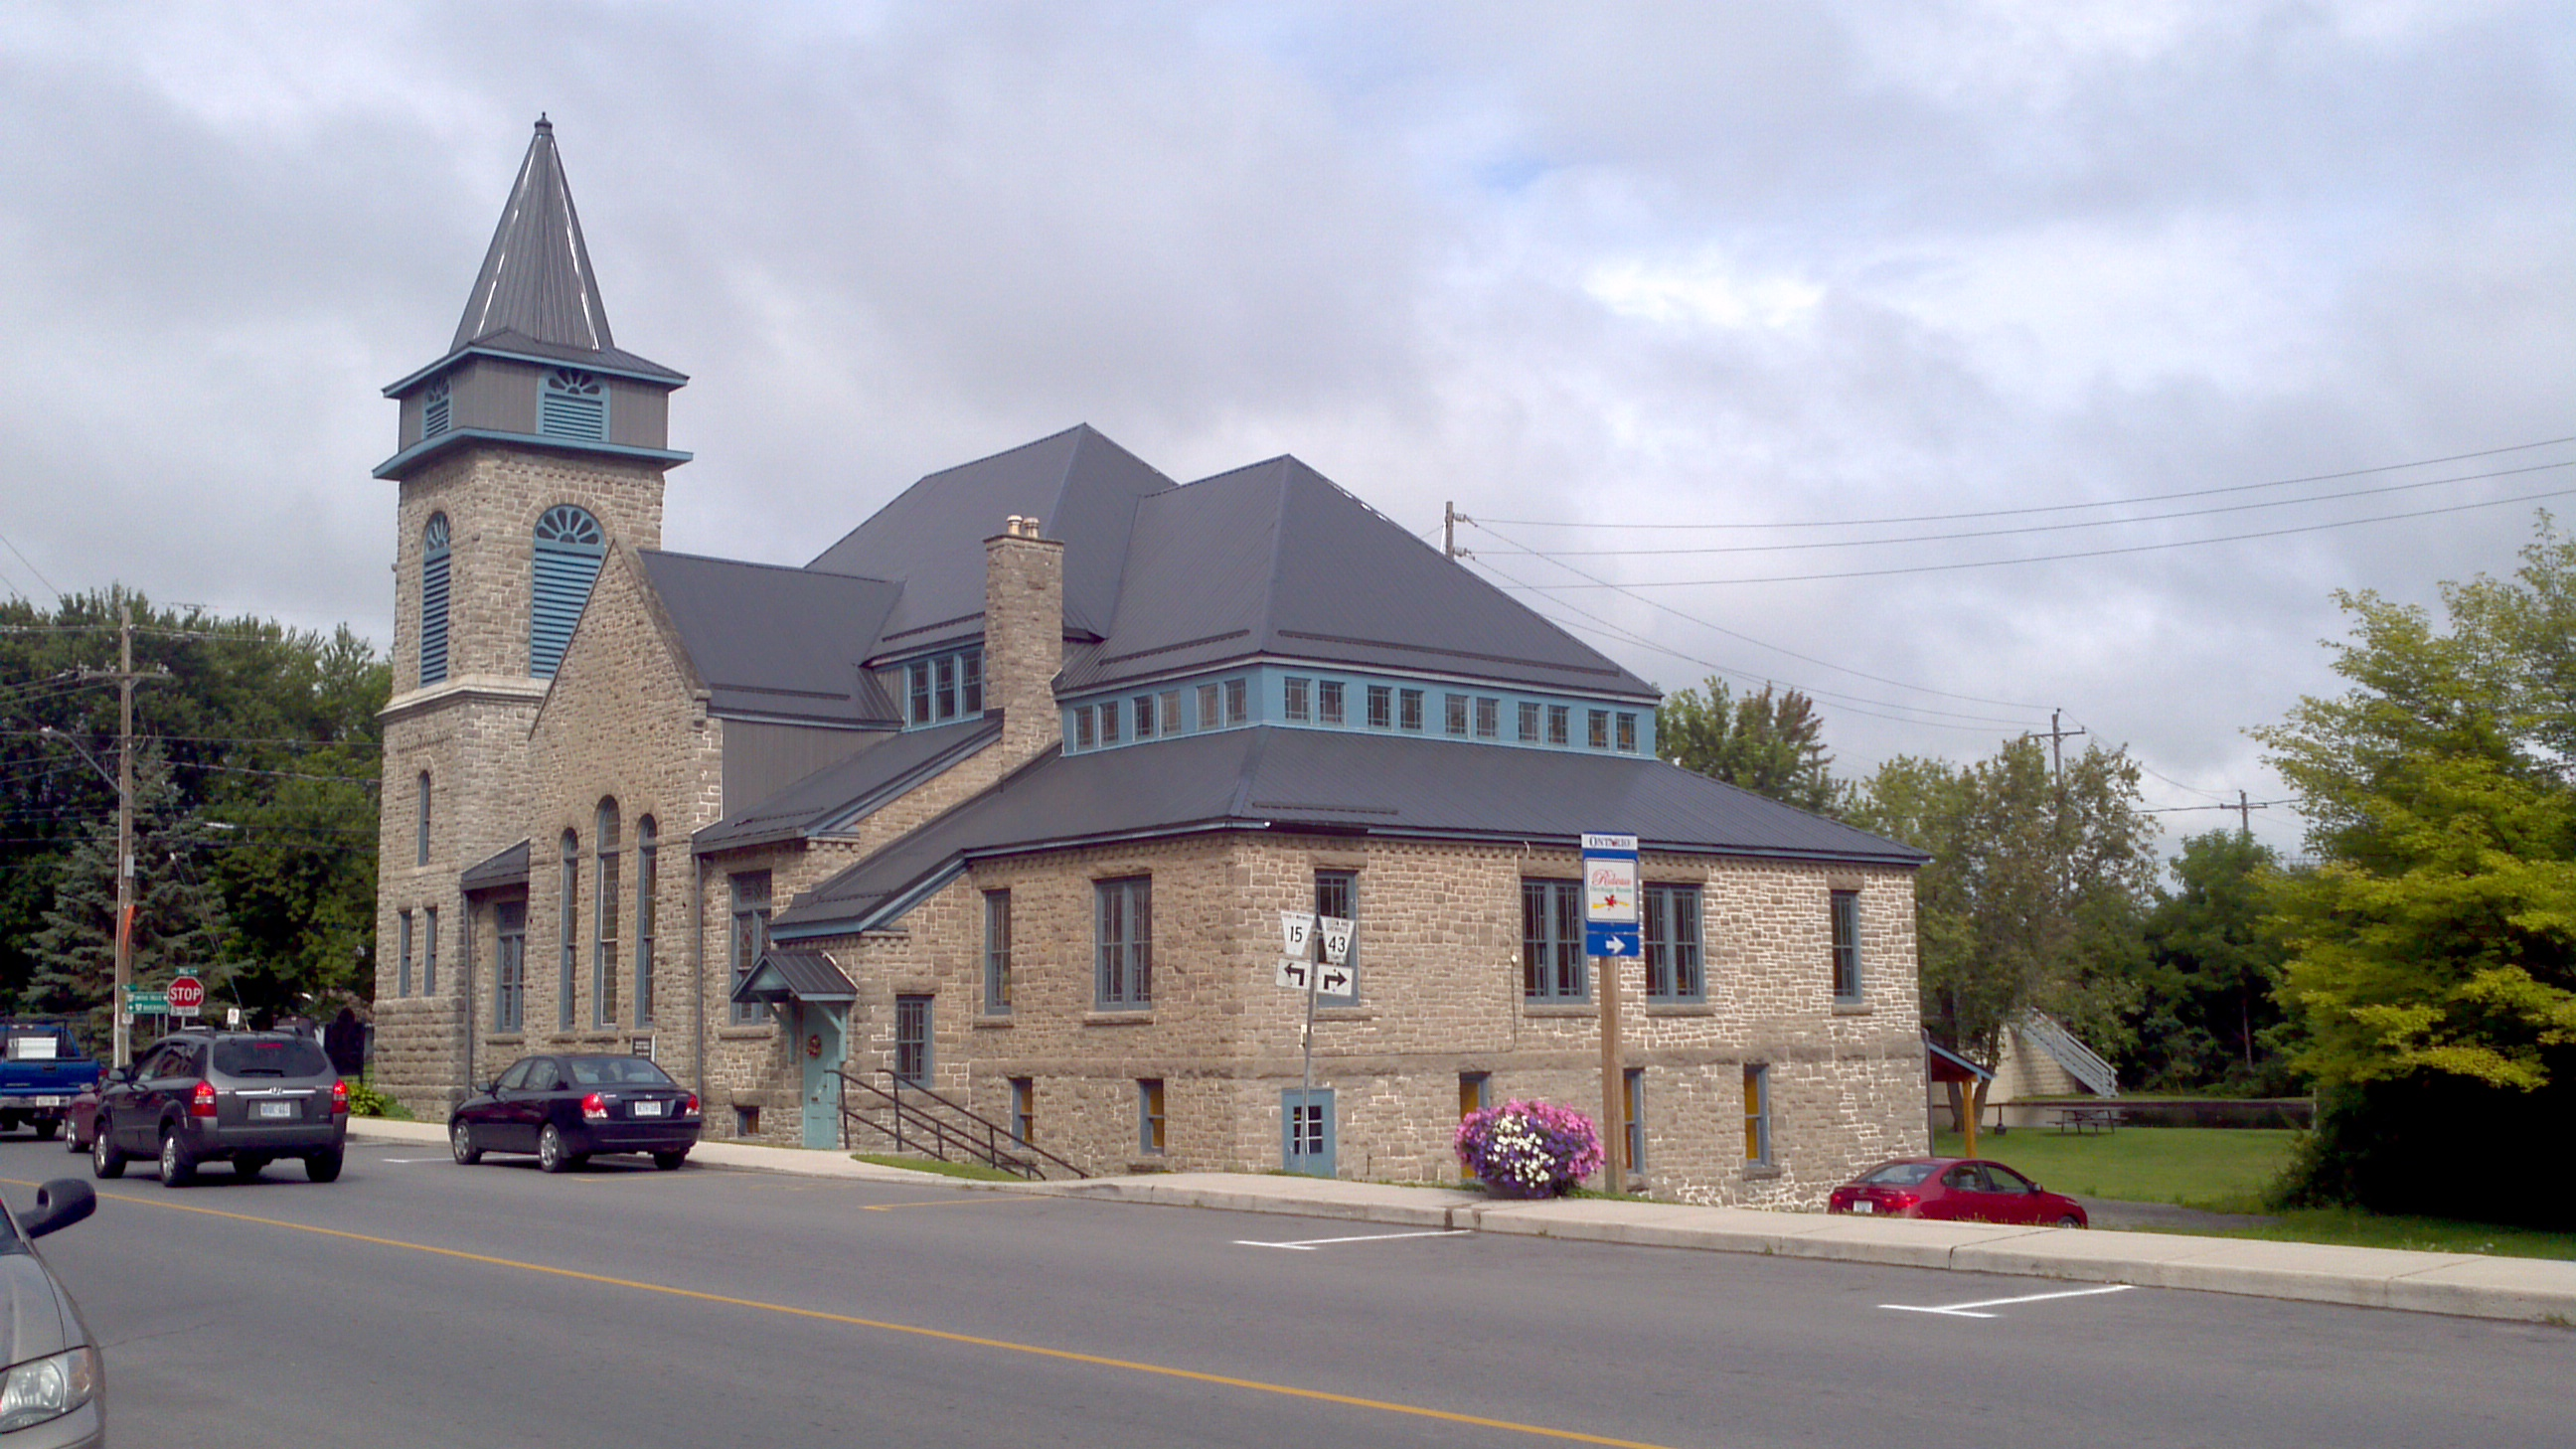 Merrickville United Church 100 St. Lawrence St. Merrickville,  Ontario, K0G 1N0